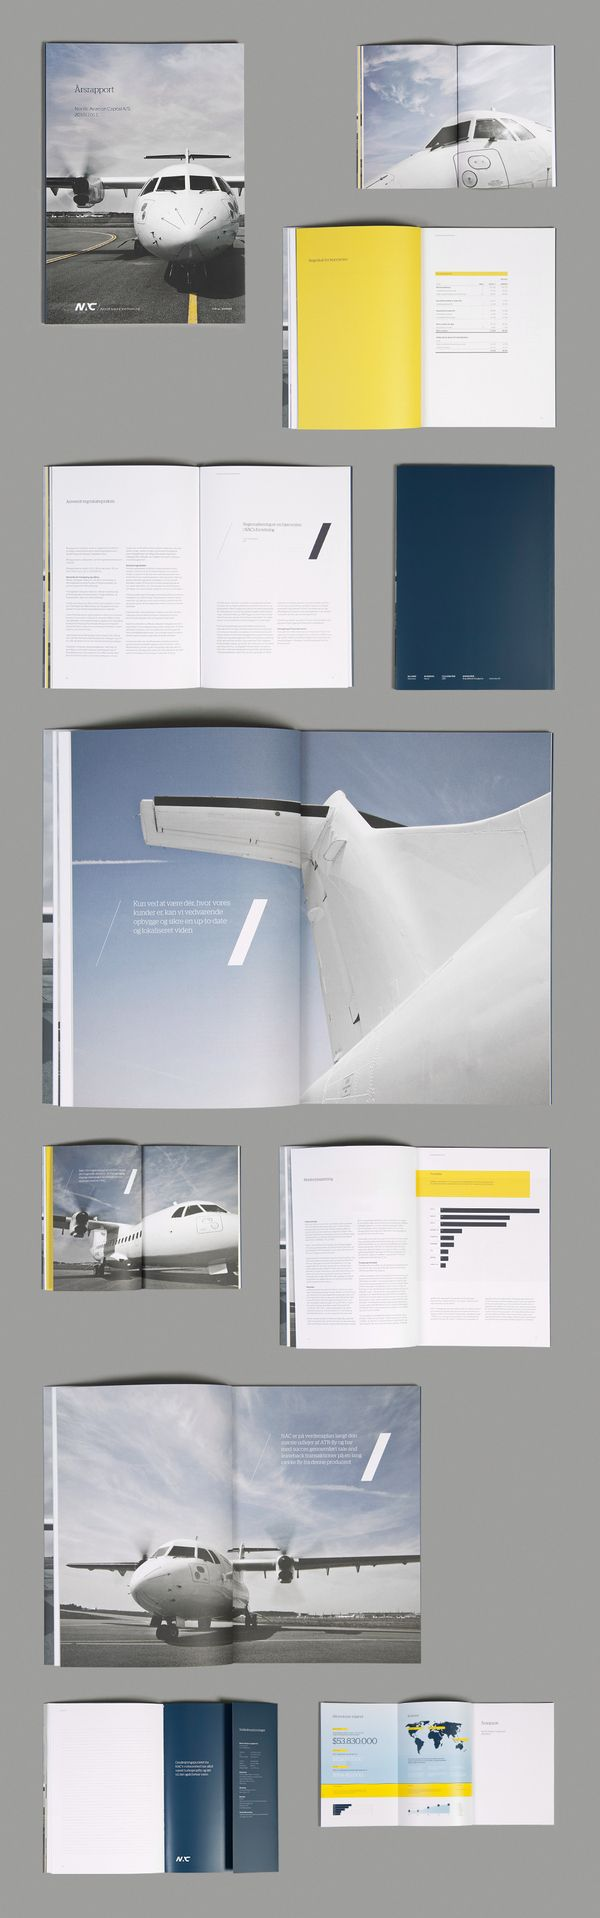 the stark yellow combined with the muted blues and soft grey/white is very pleasing to the eye.  the different perspectives of the plane create interesting borders to frame the text with.